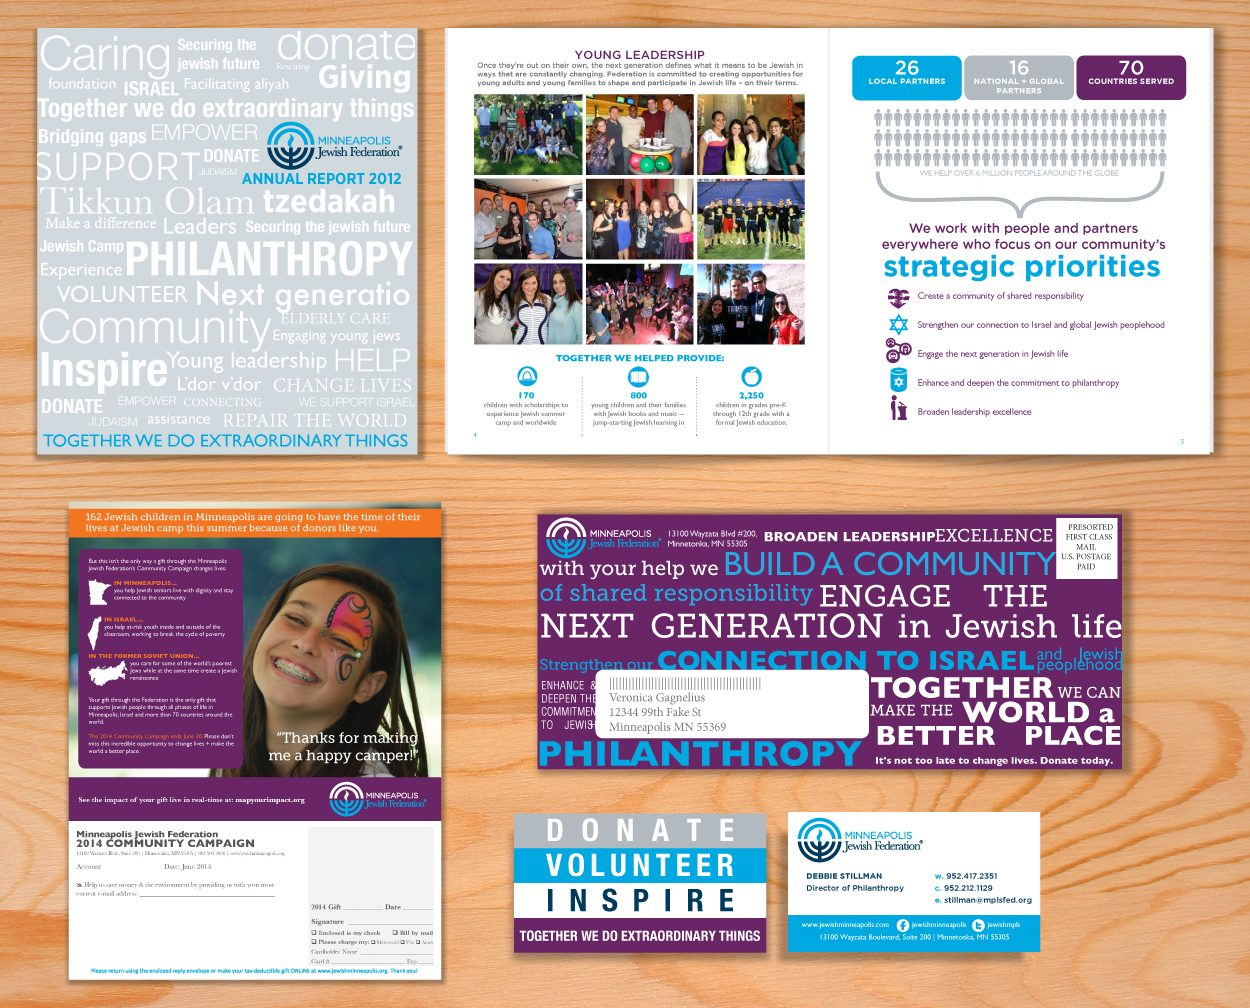 Minneapolis Jewish Federation Brand Identity by DreamBig Creative Minneapolis, MN